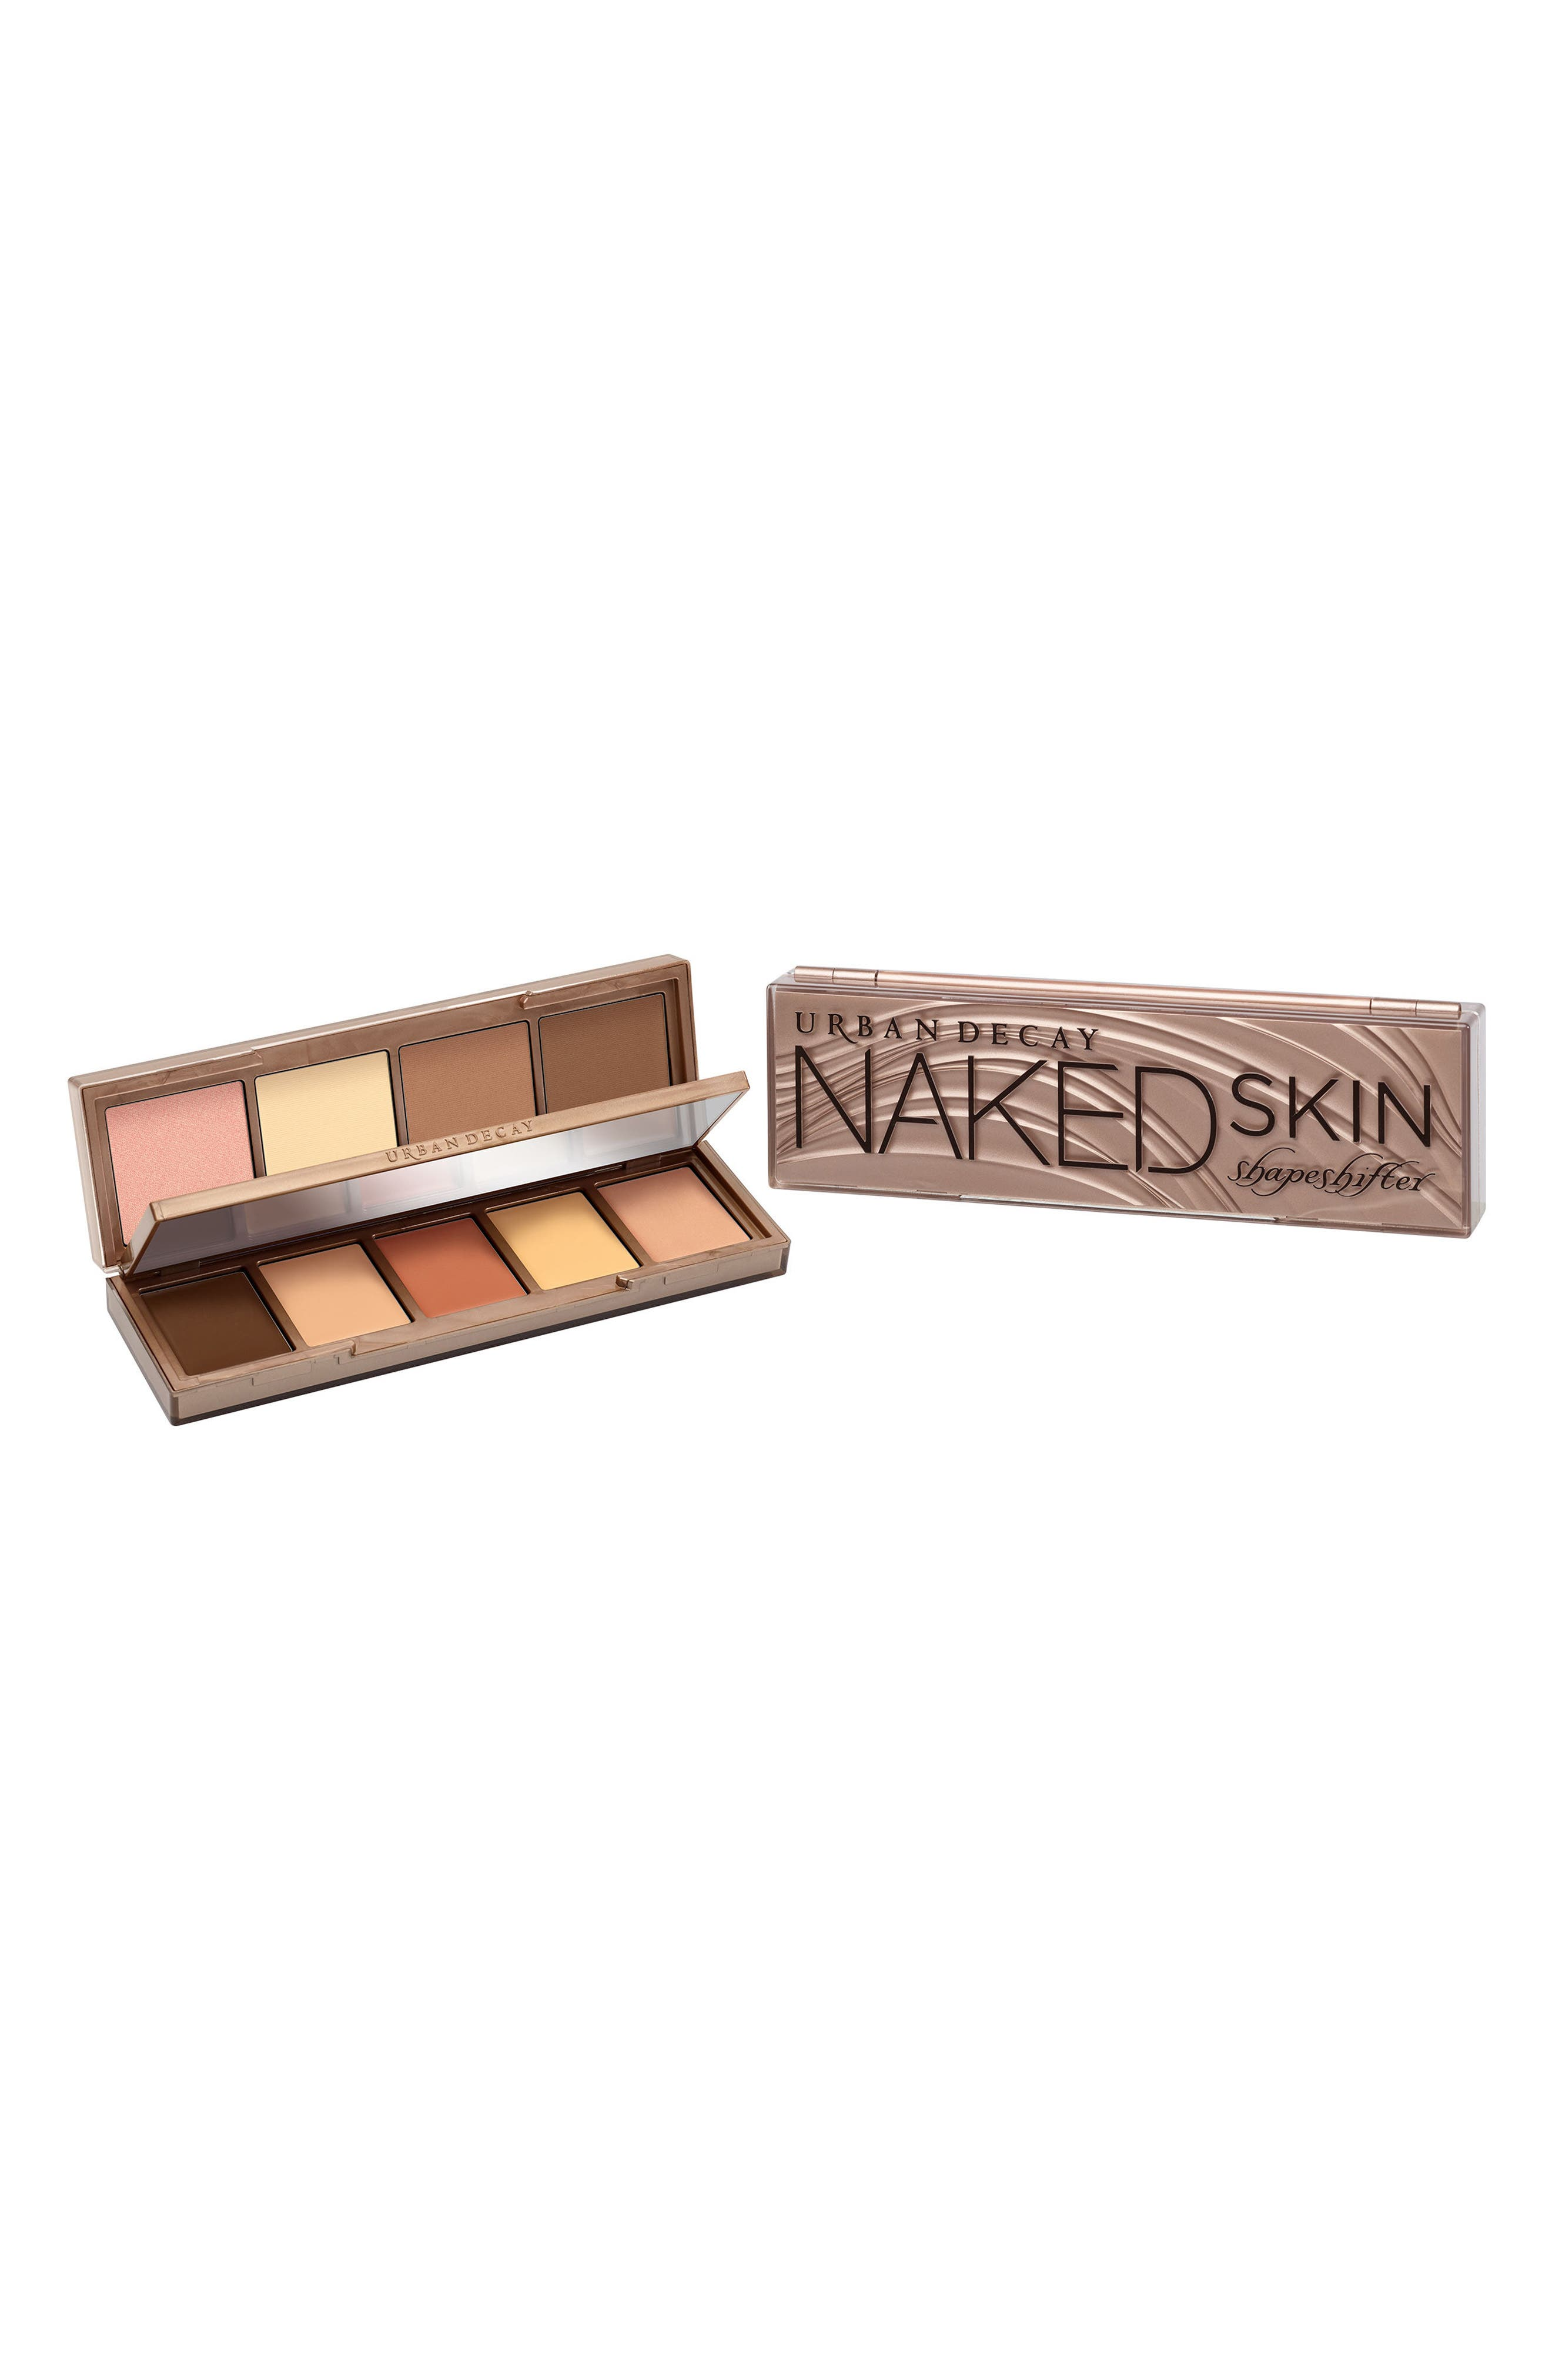 Alternate Image 1 Selected - Urban Decay Naked Skin Shapeshifter Palette